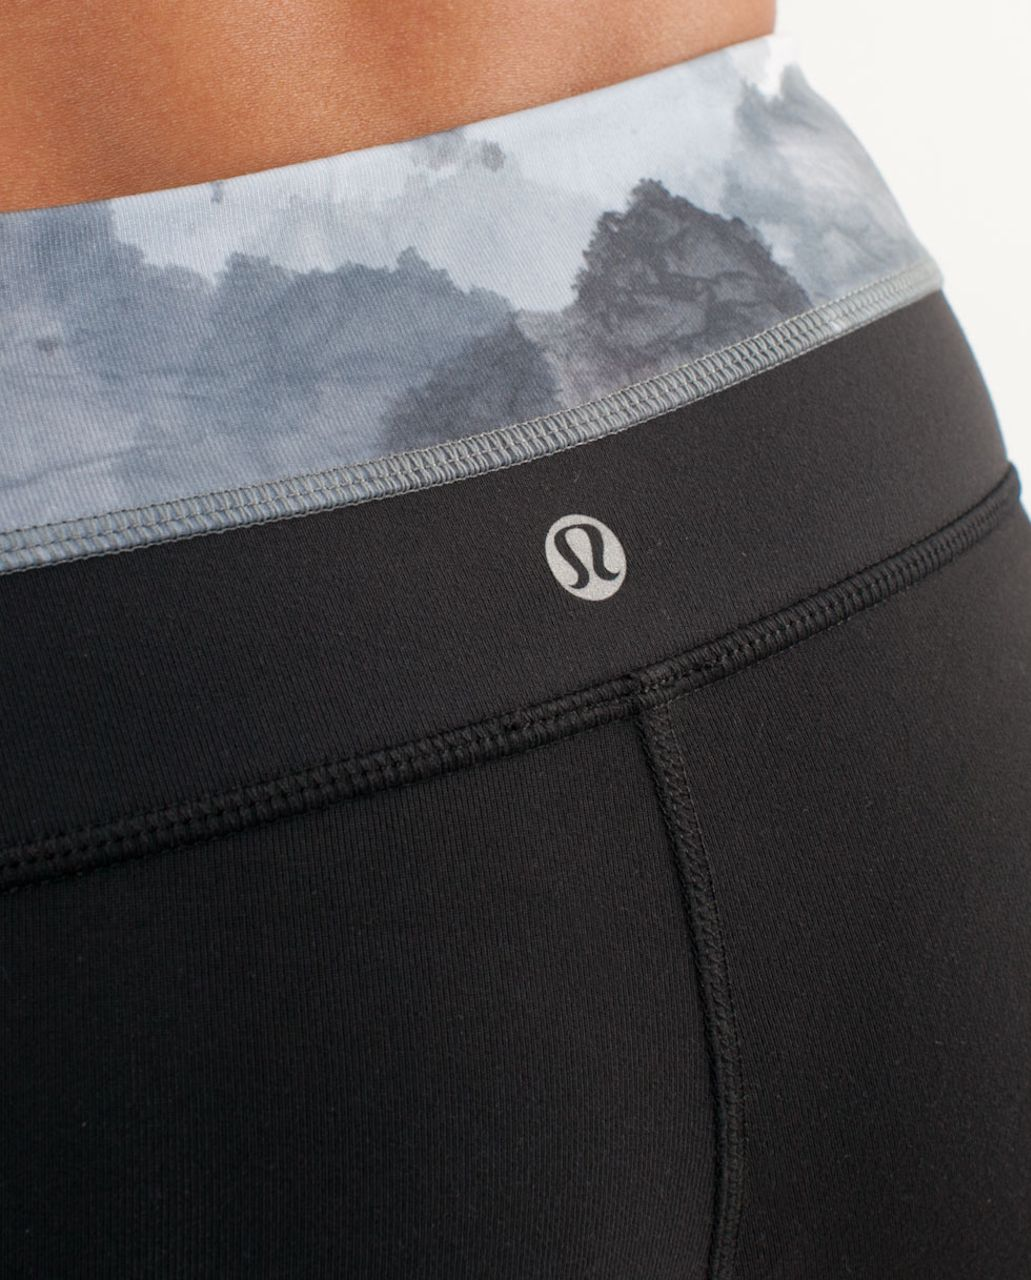 Lululemon Groove Short - Black /  White Coal Tinted Canvas Super